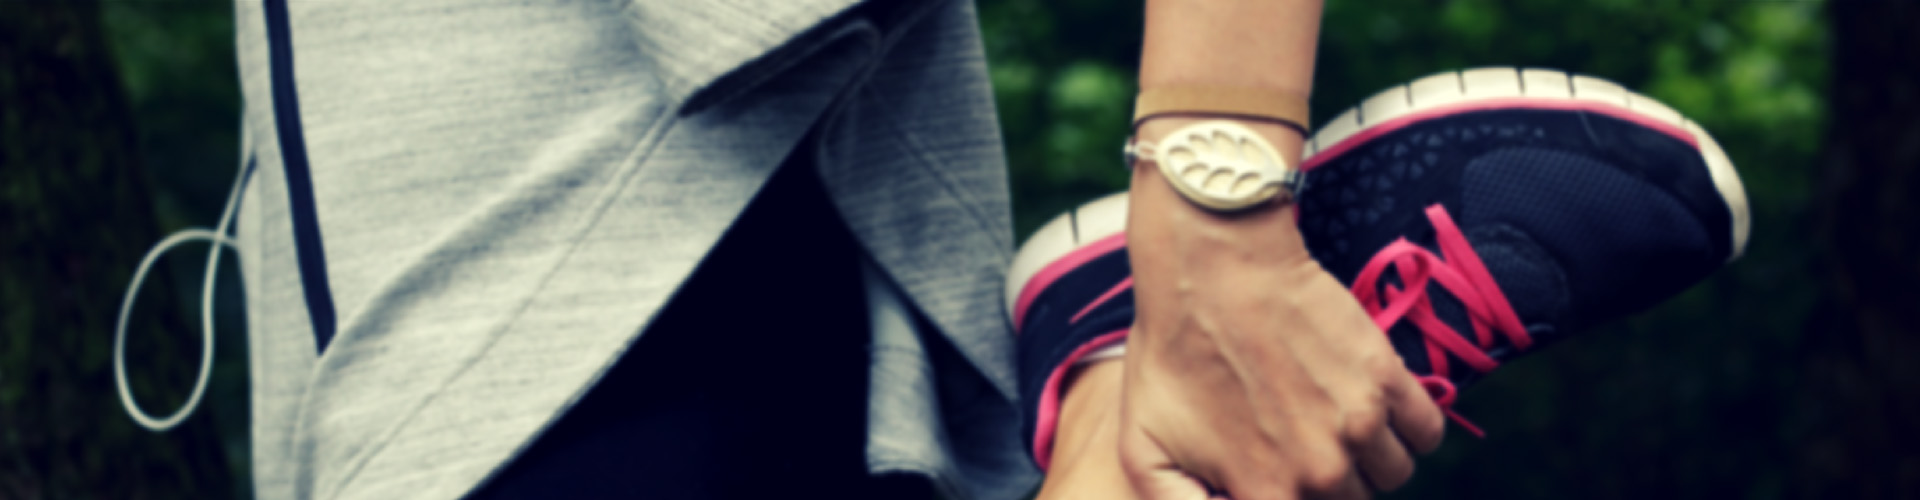 Bellabeat Leaf is a Naturally Inclined and Fashionably Concepted Smart Jewelry For Moms and Pregnant Women